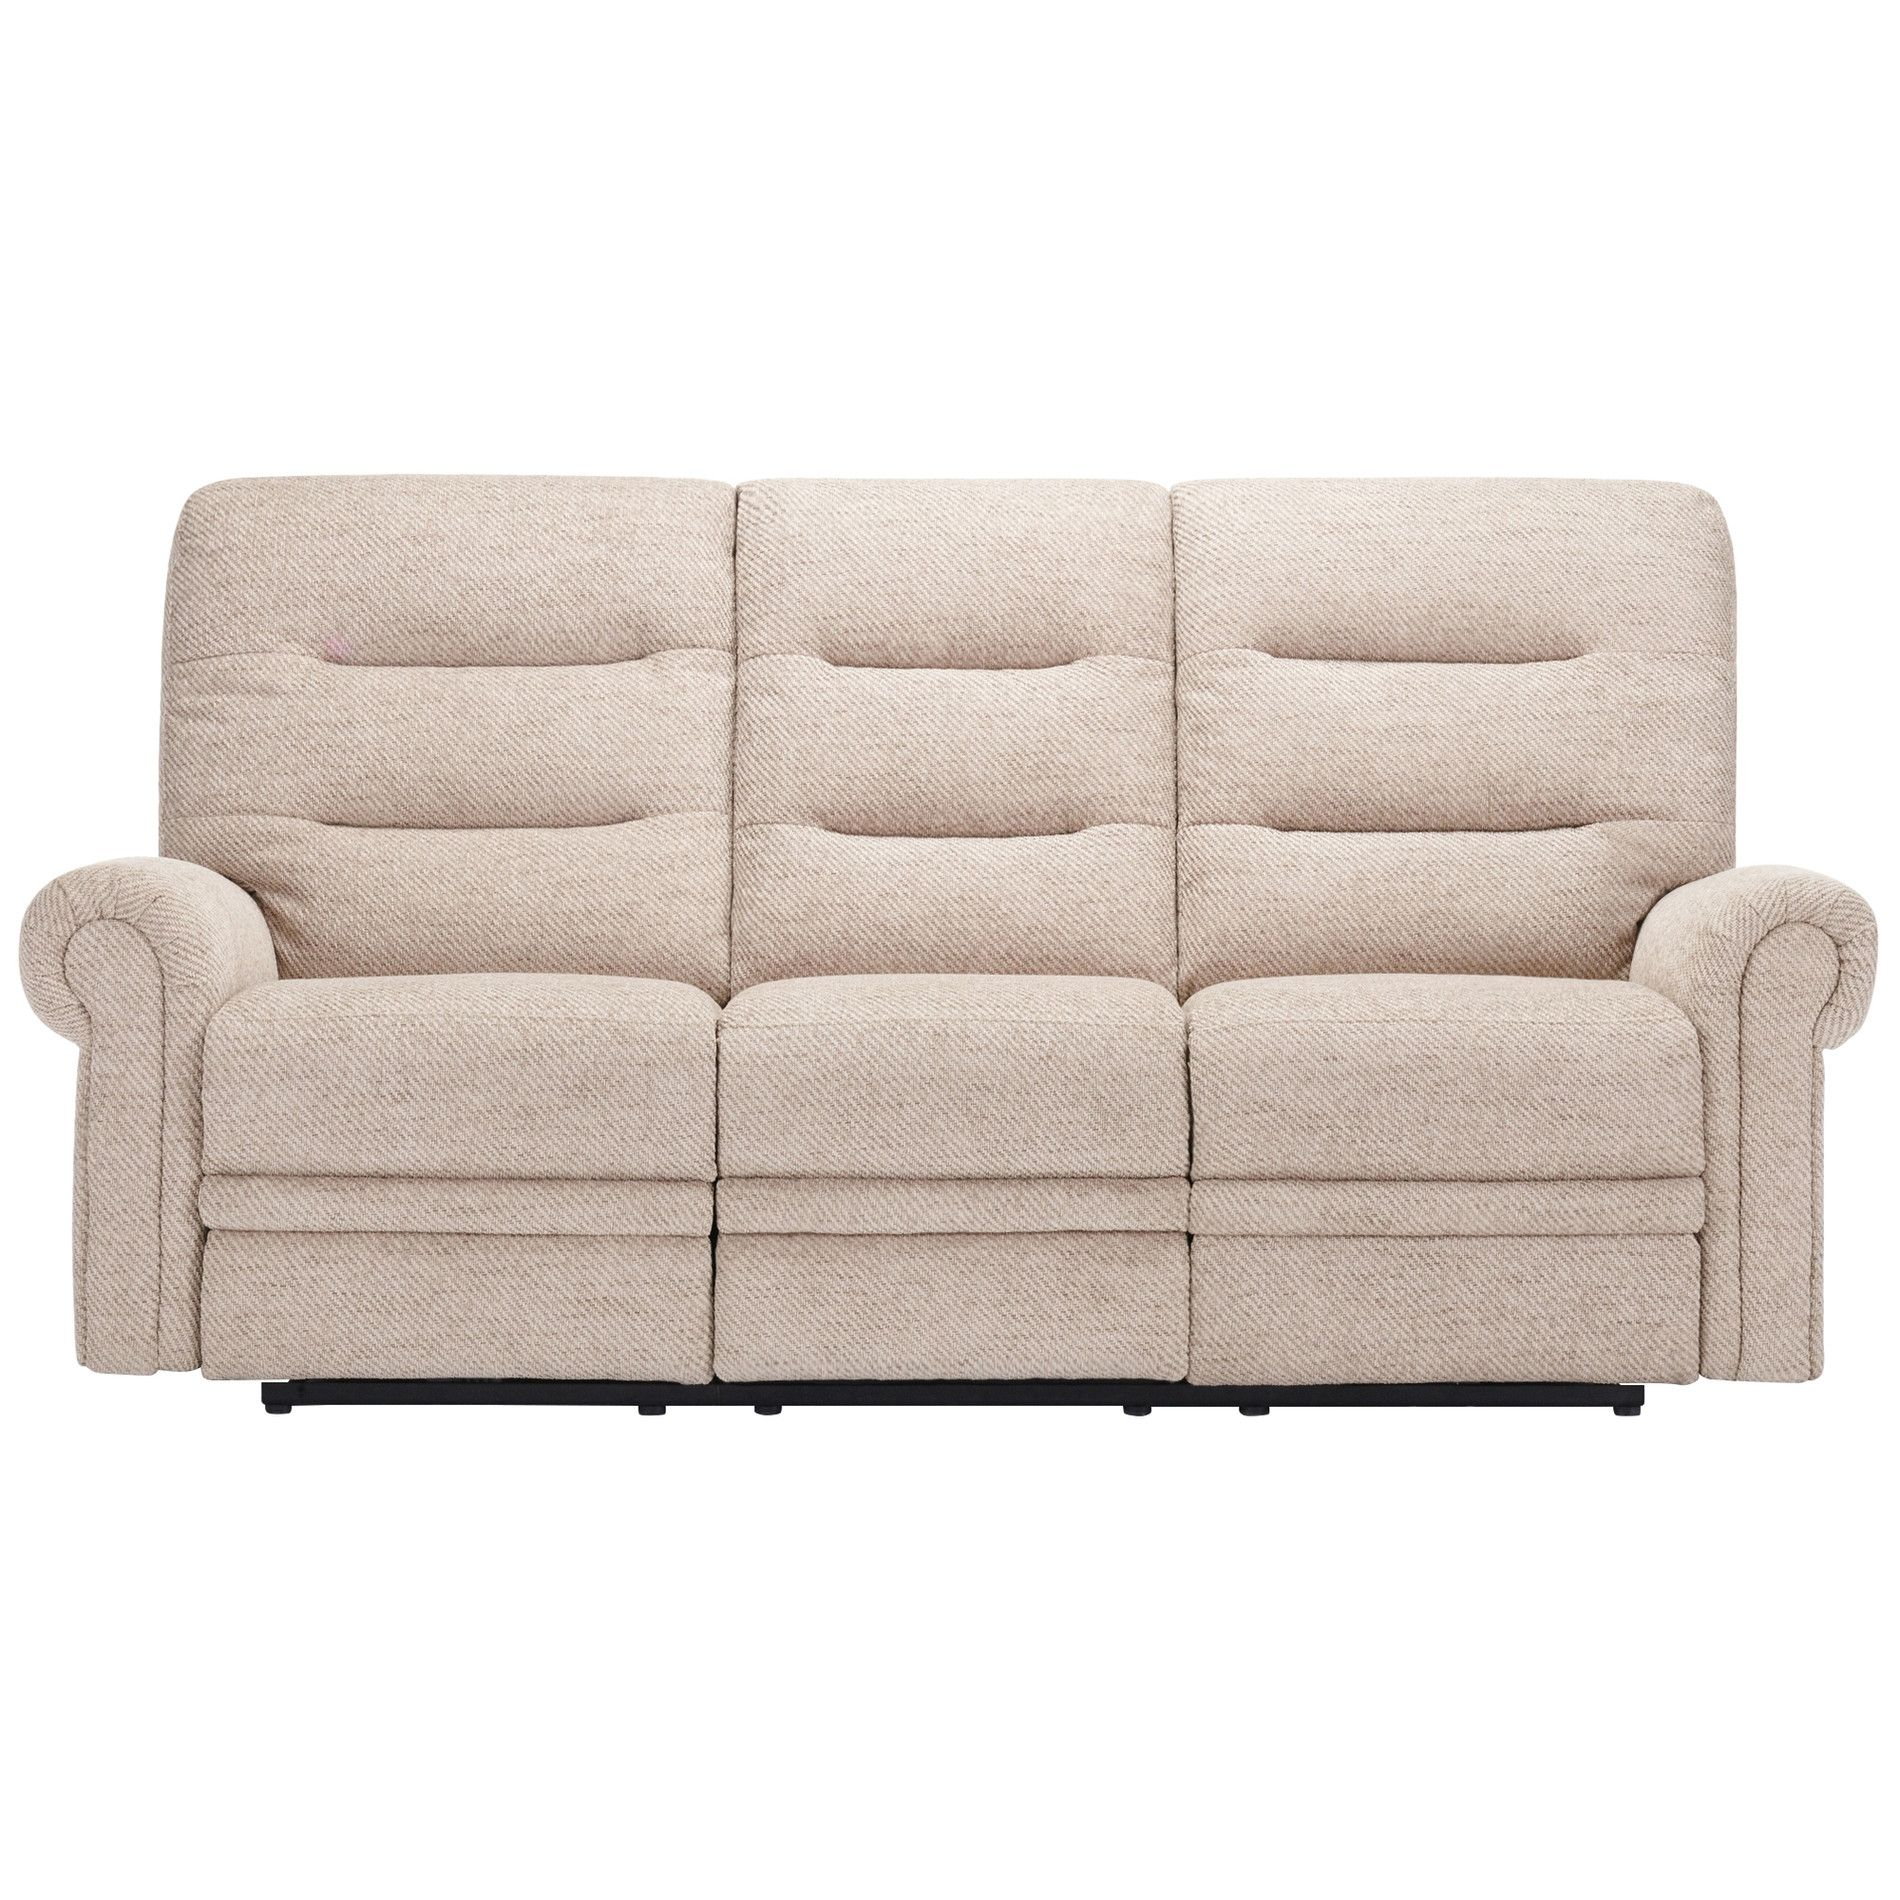 Sofa Bed Eastbourne Eastbourne Electric Reclining 3 Seater Sofa Oatmeal Fabric